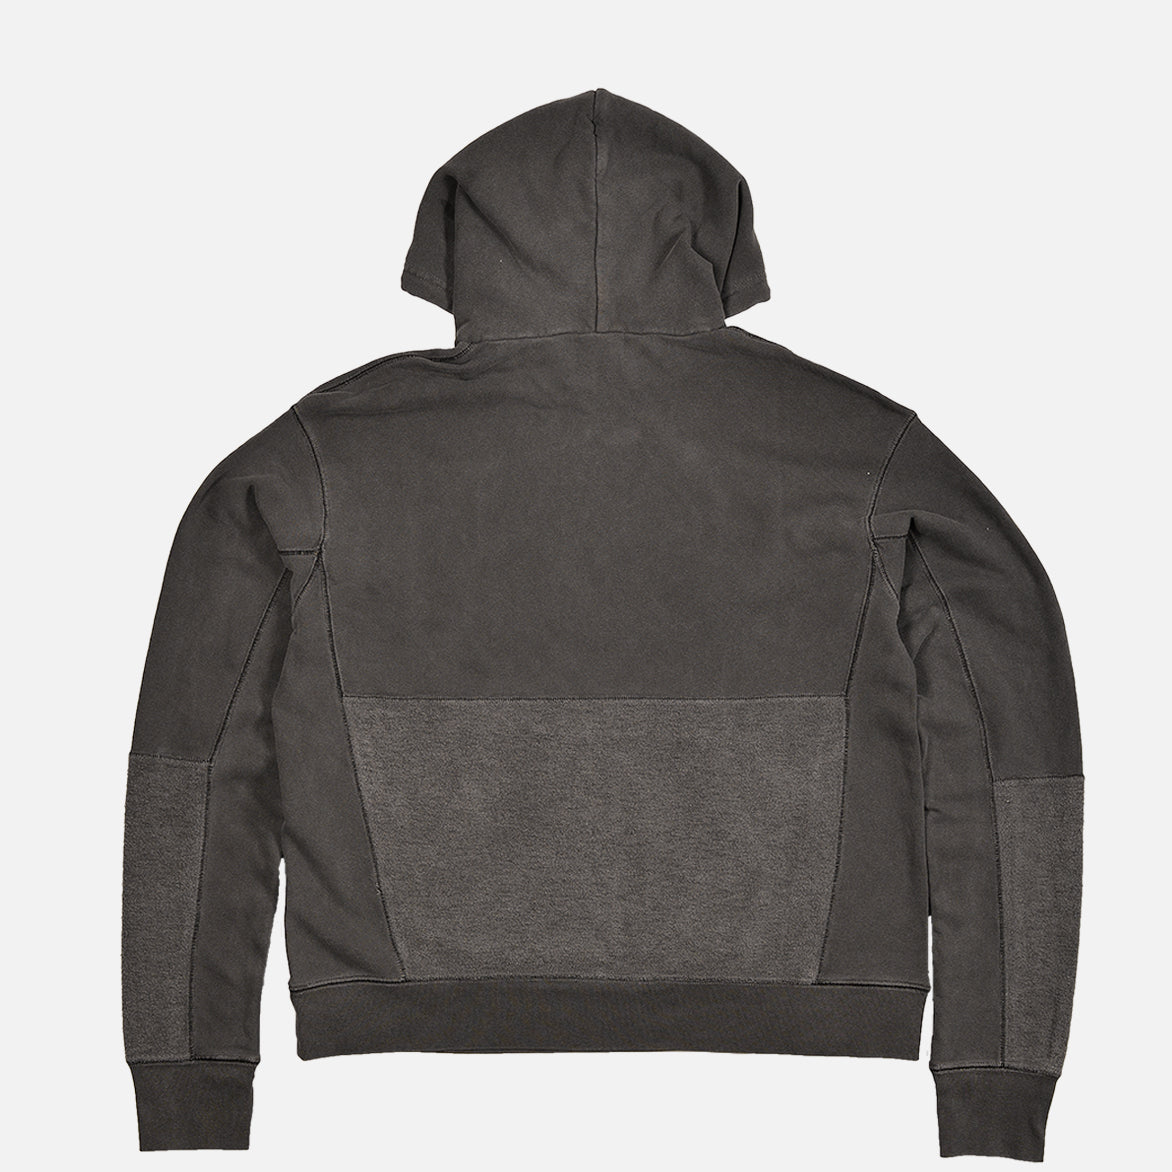 LOOSE STITCH BEACH HOODIE - WASHED BLACK